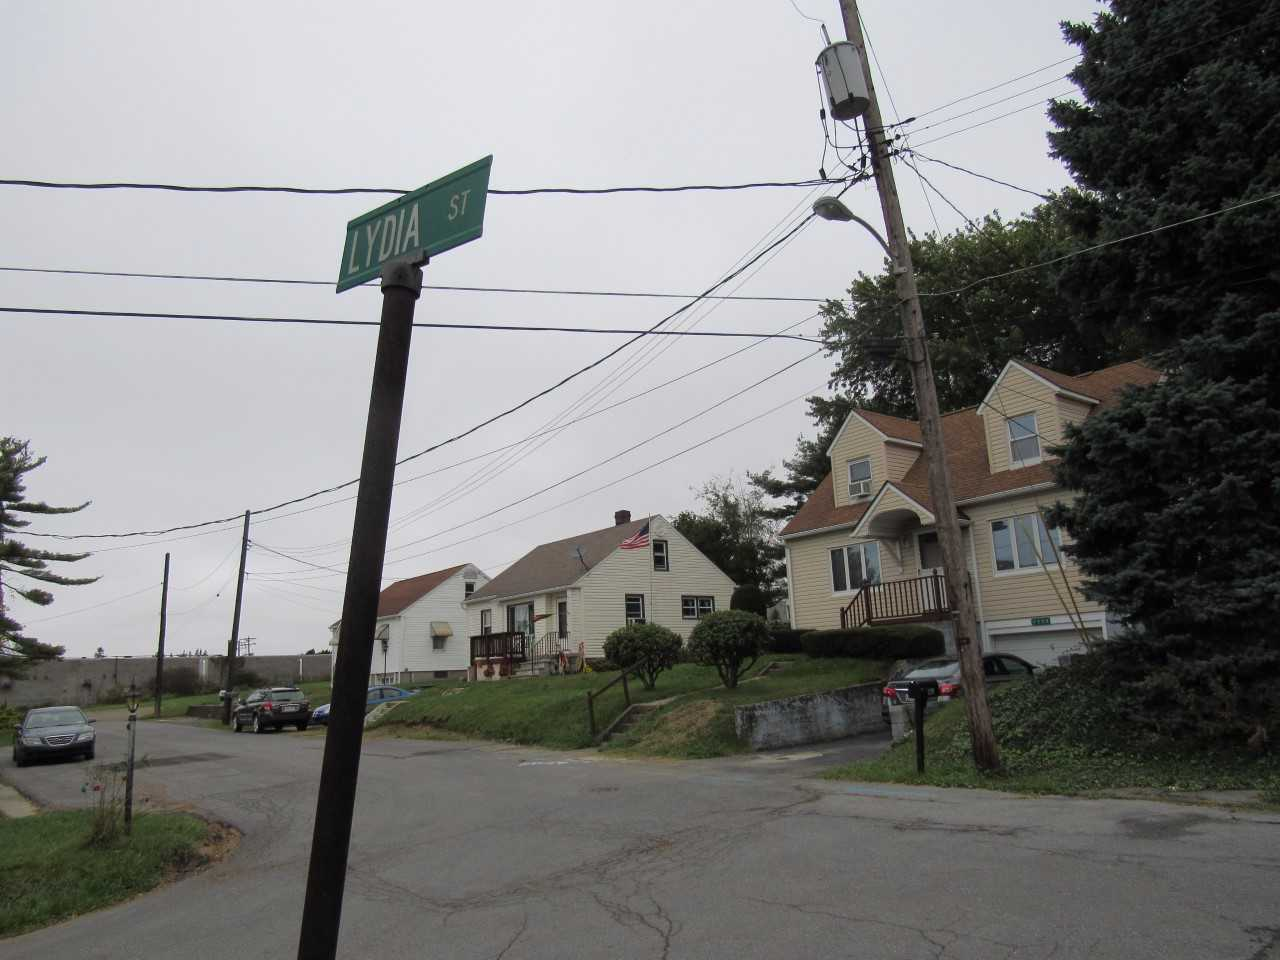 Lydia Street, where a 2013 unsolved homicide occurred, is located in Richland Township.